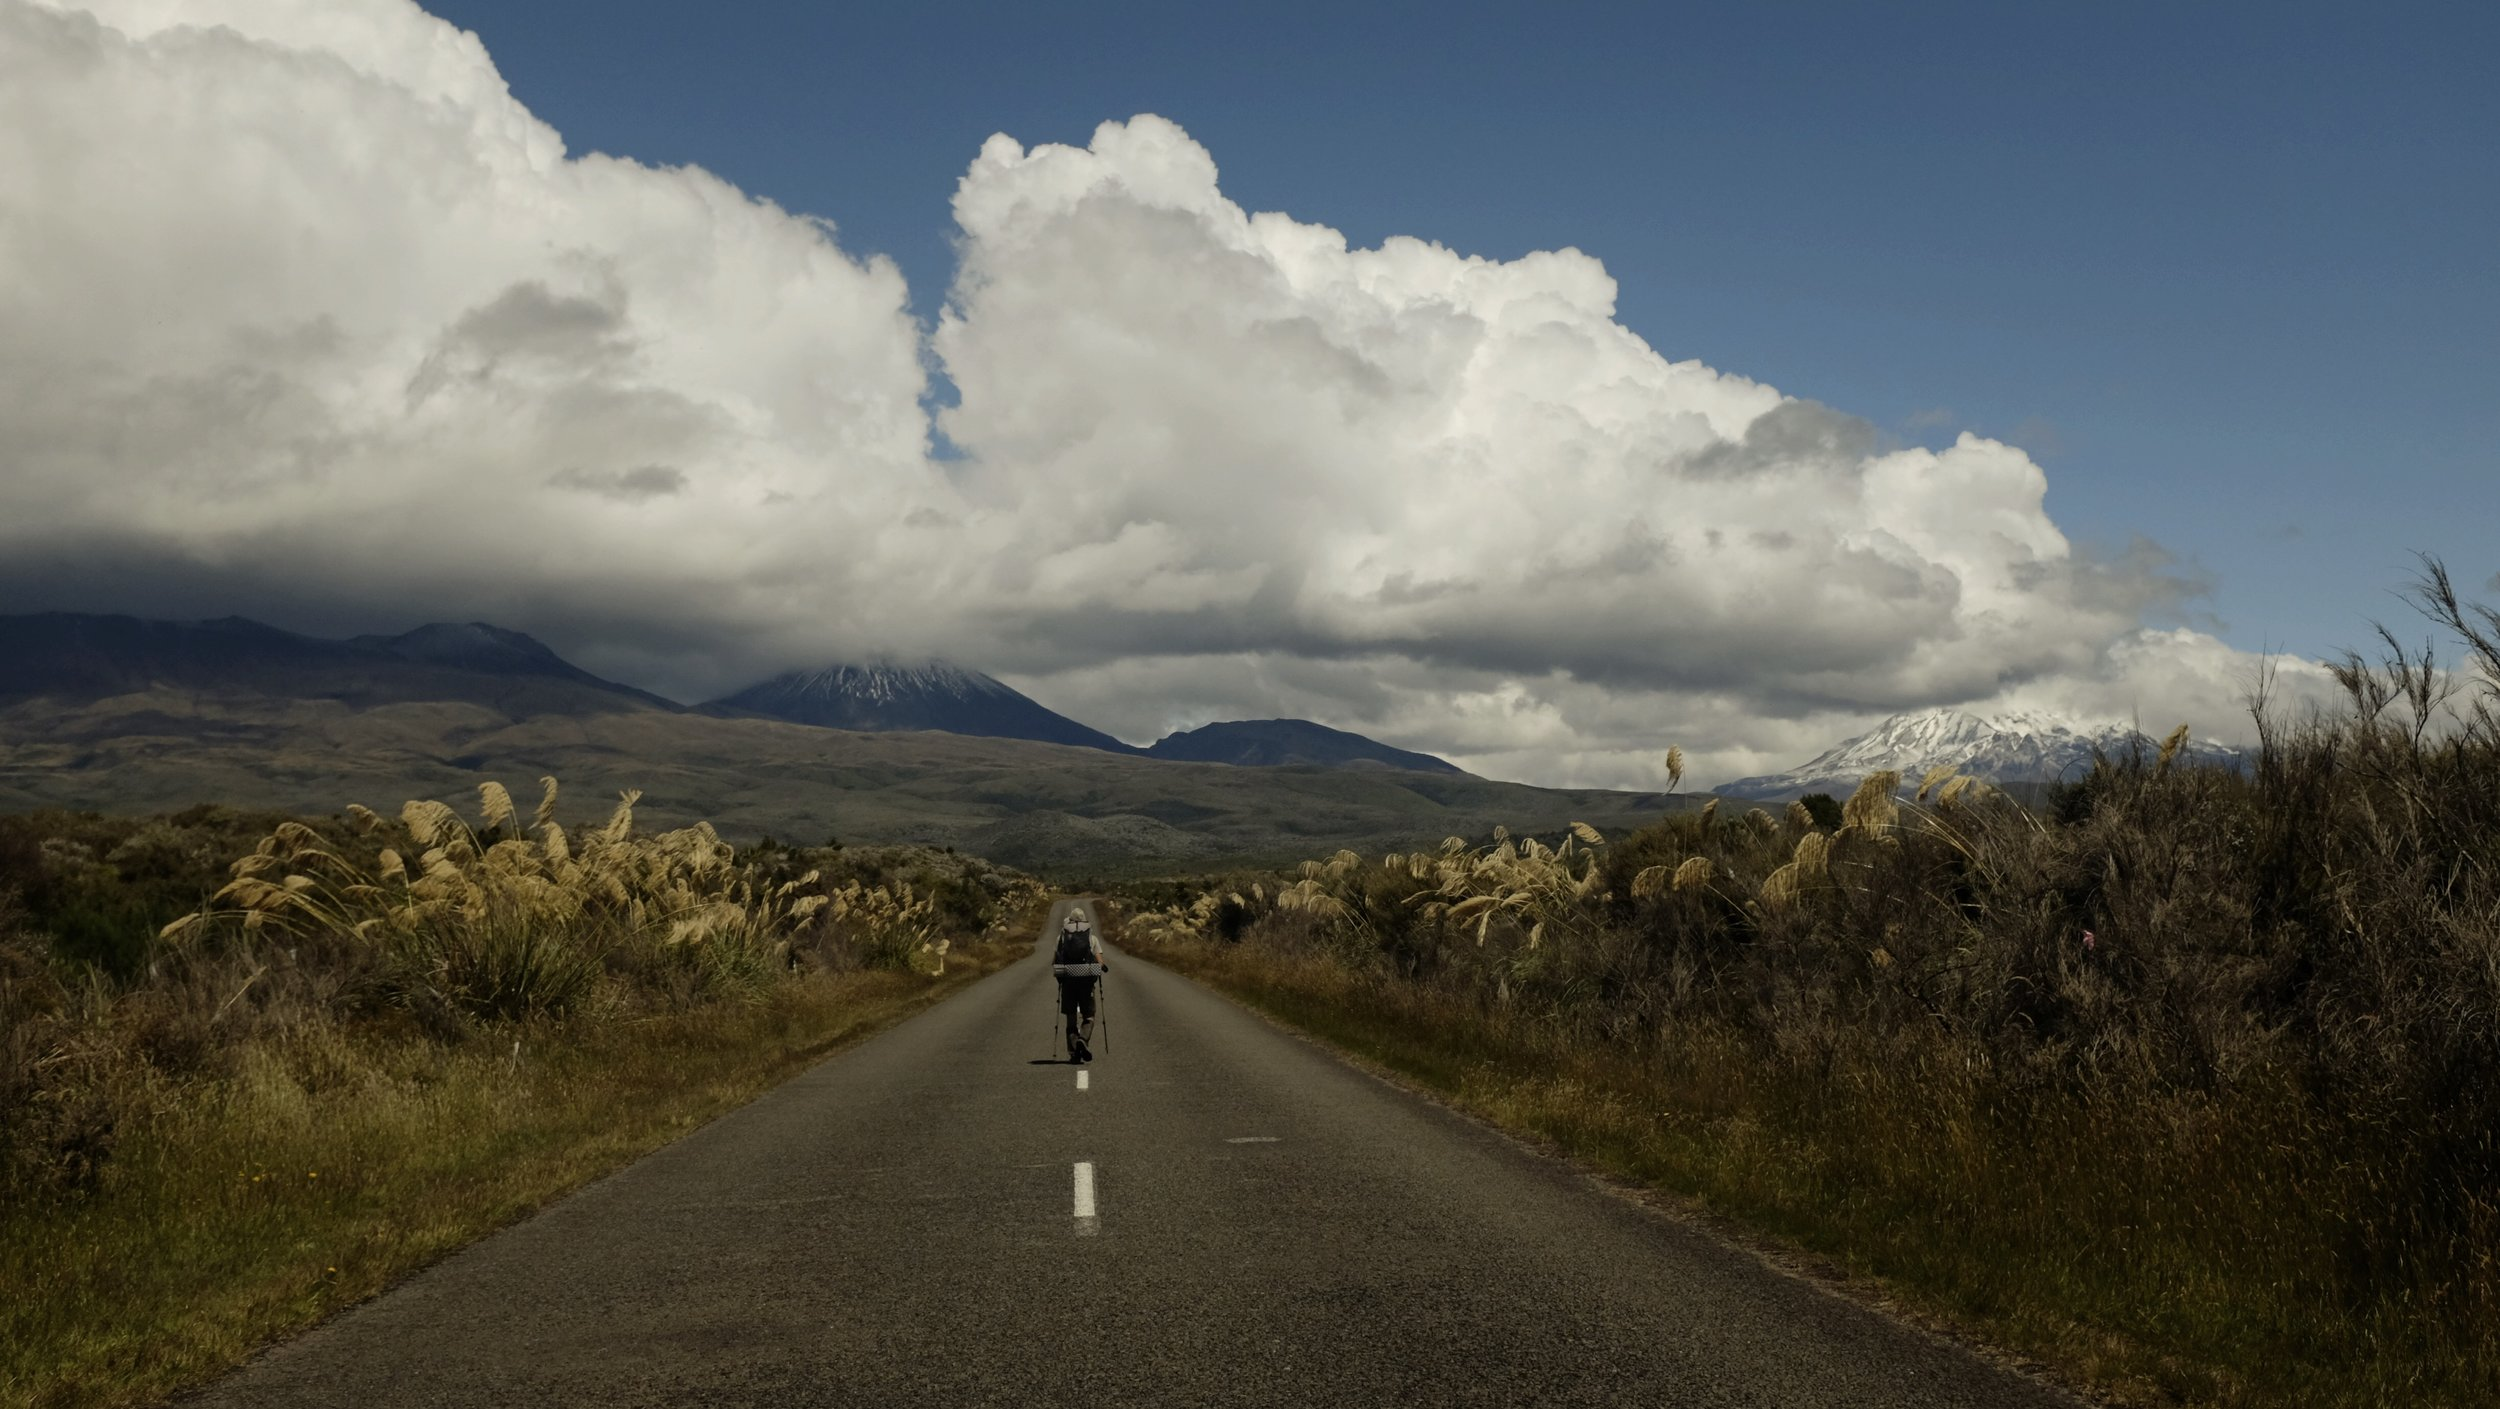 Entering Tongariro National Park.